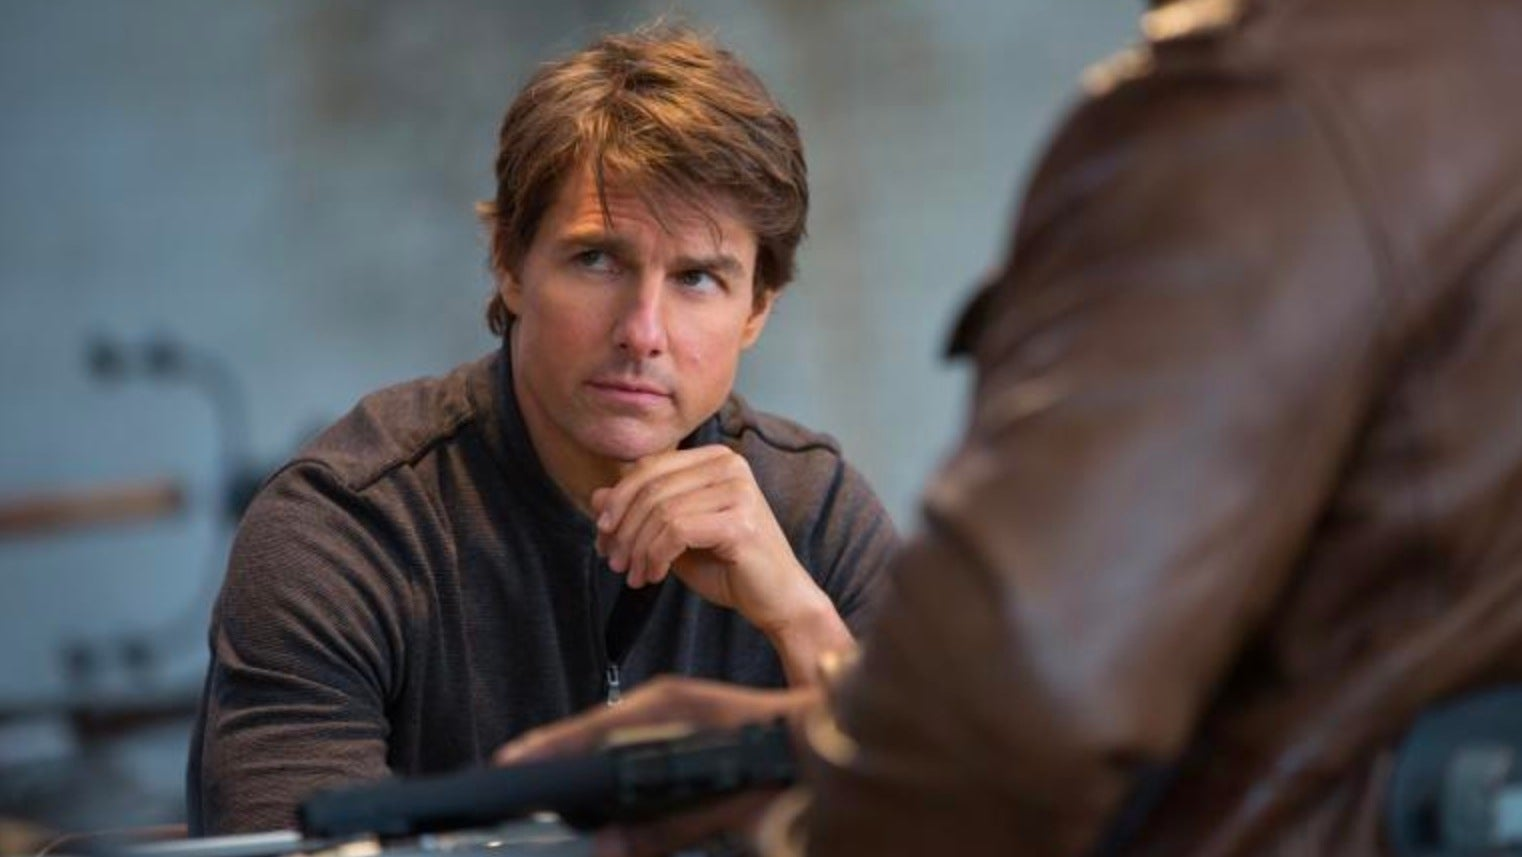 Production On Mission: Impossible 6 Delayed Due To Tom Cruise's Accident